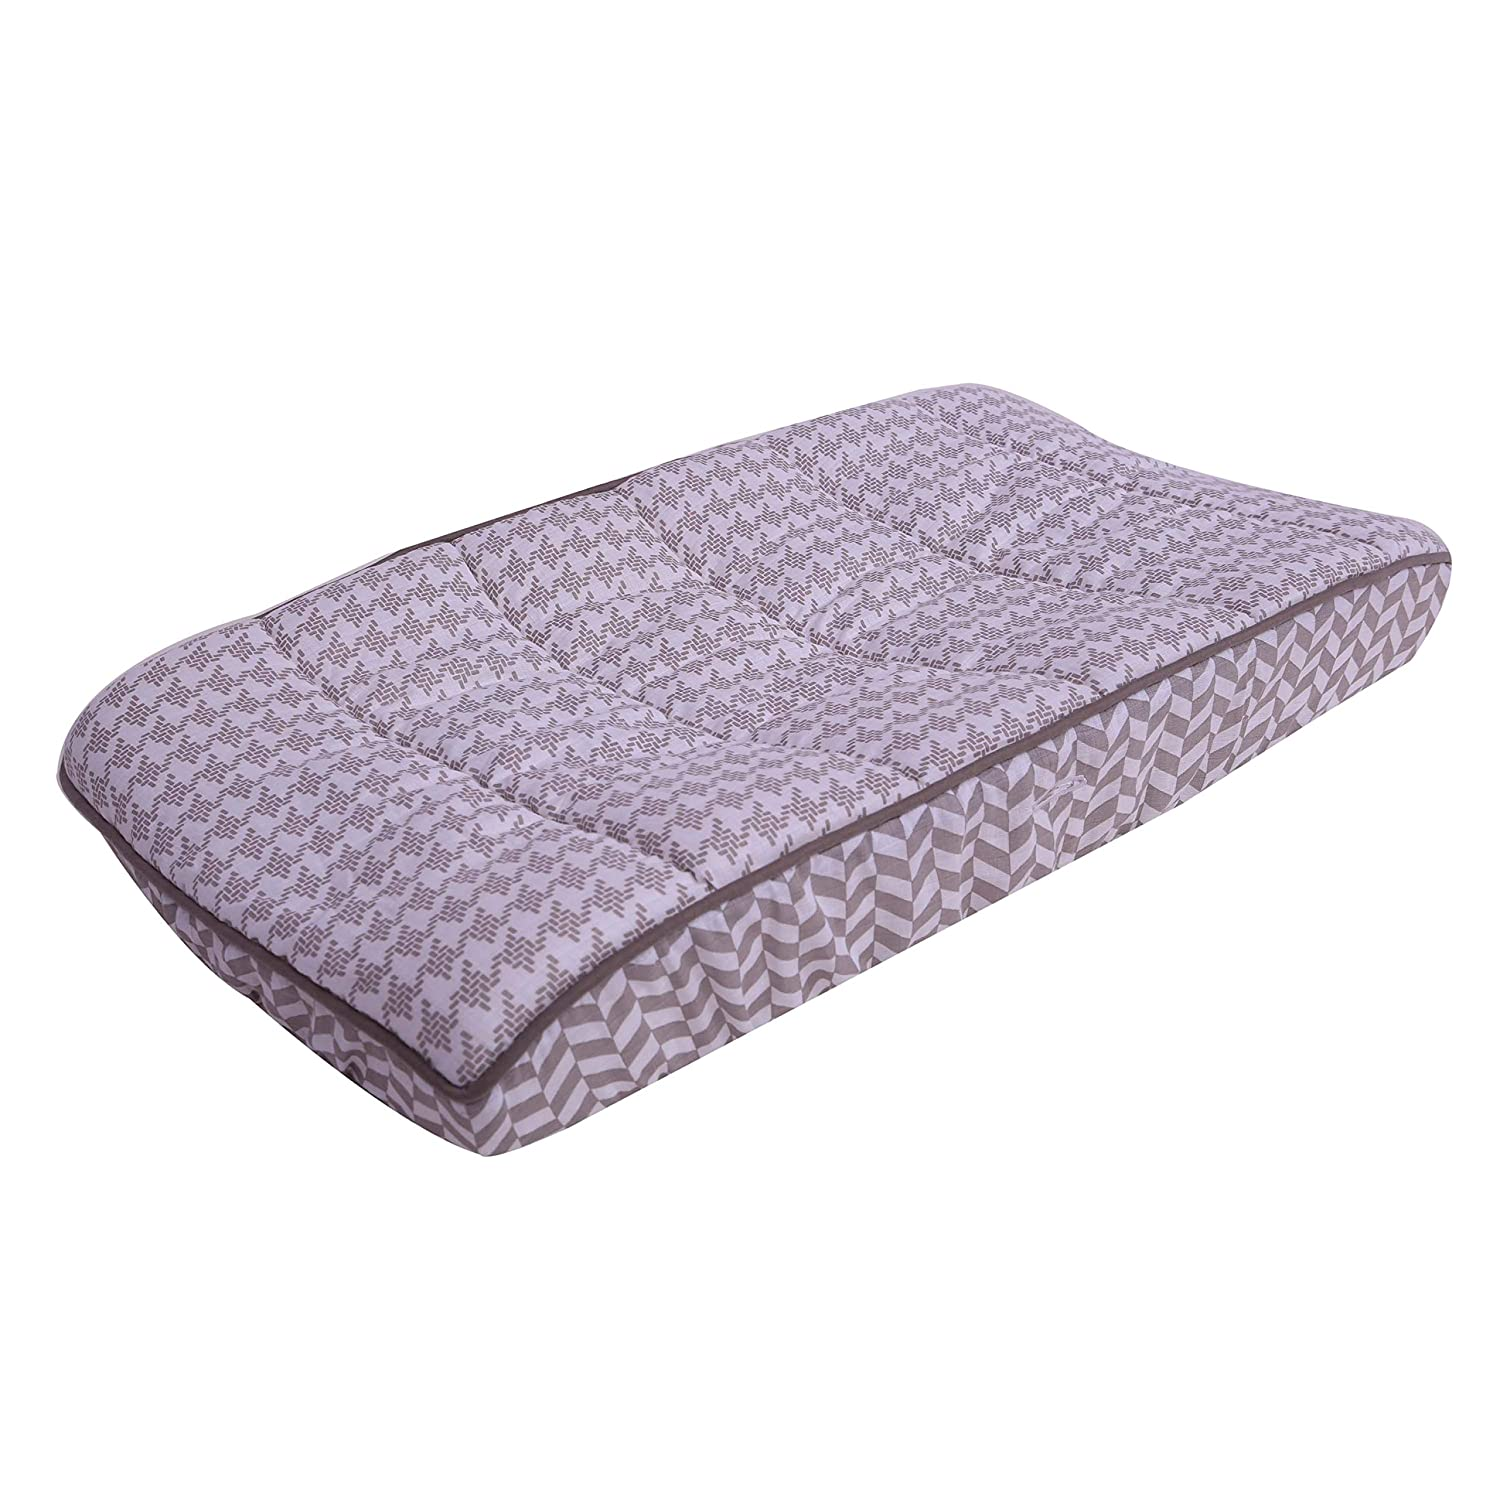 Bacati Houndstooth Muslin Quilted Diaper Changing Pad Cover 100 Cotton Shell with Polyester Batting, Grey